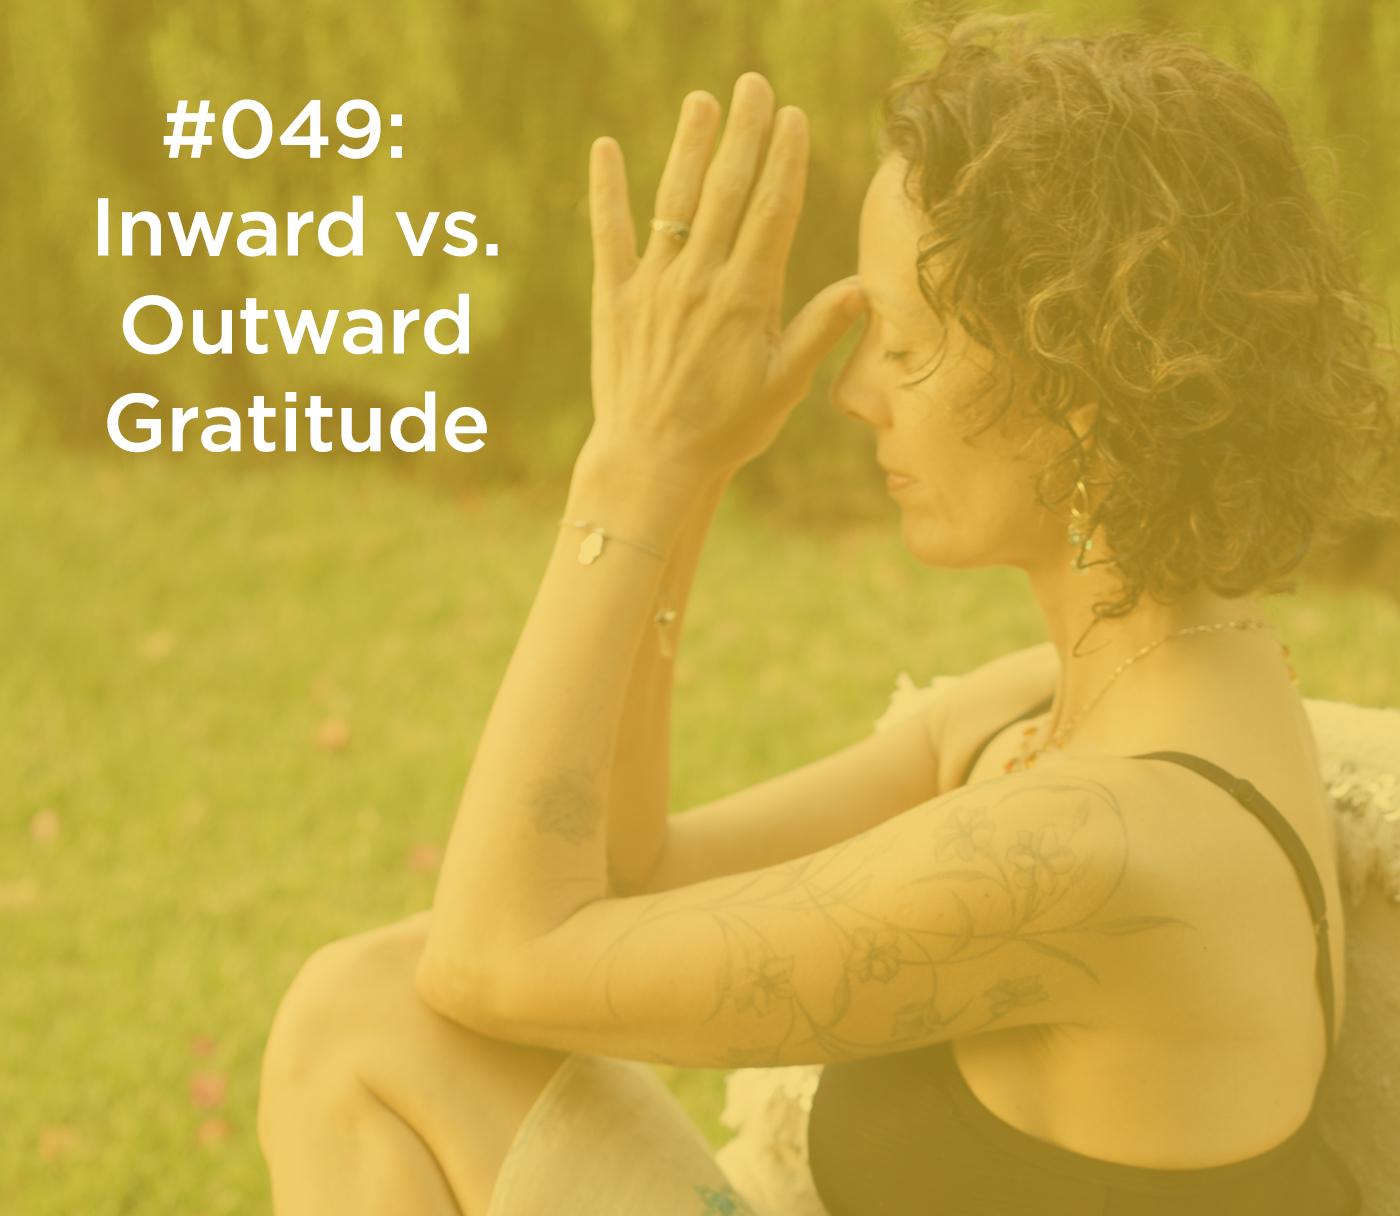 Inward vs. Outward Gratitude